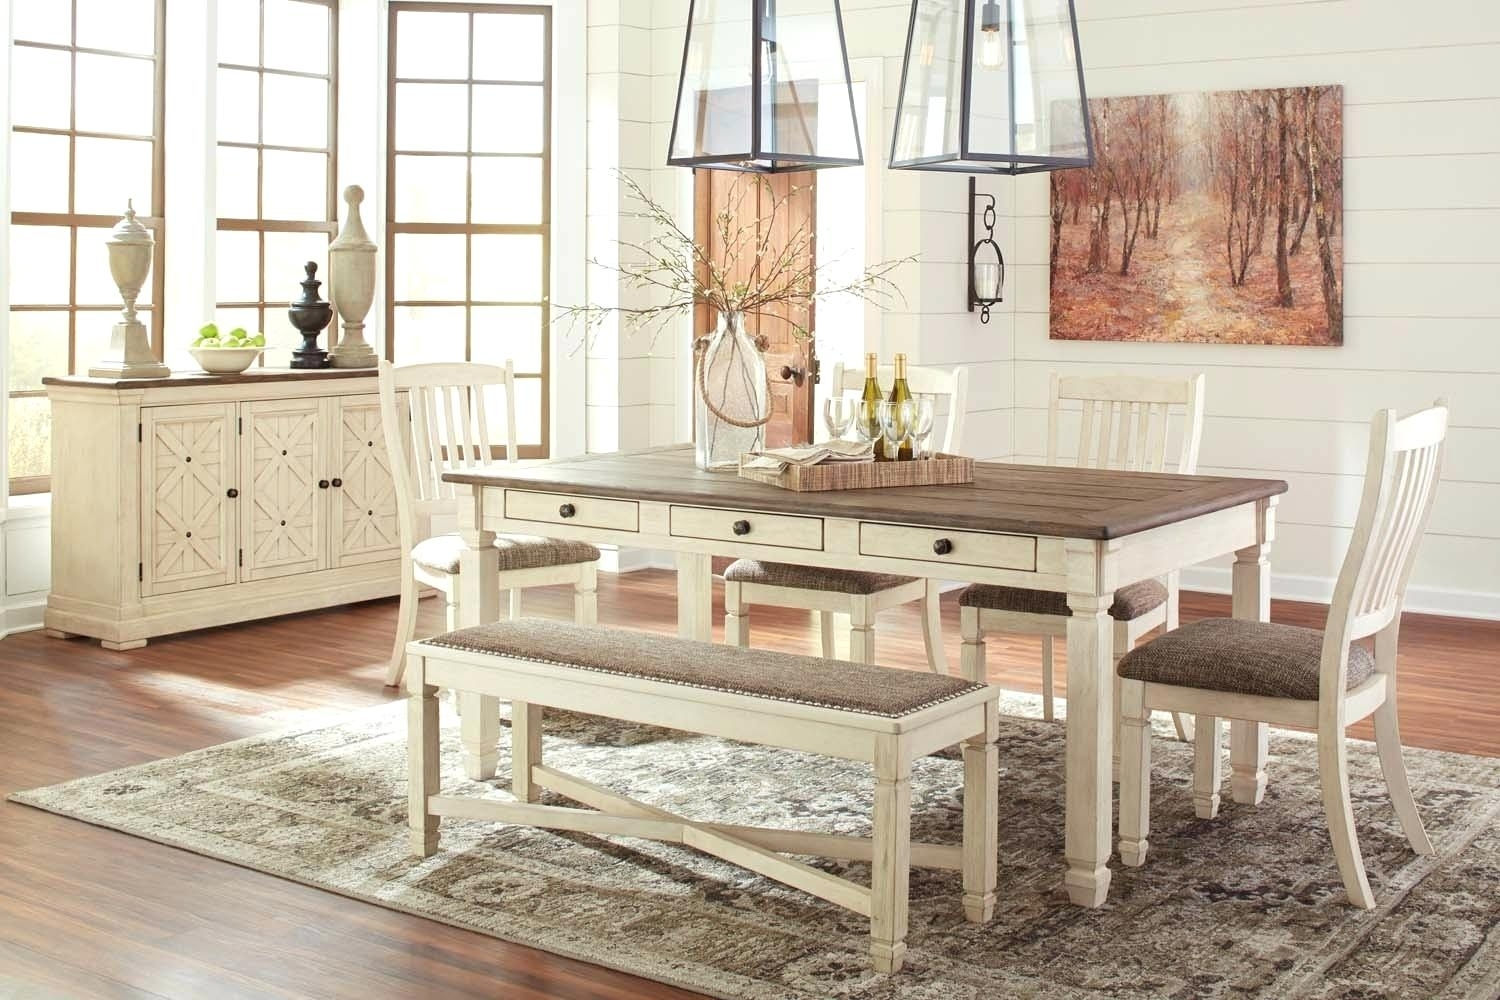 6 Piece Dining Room Set Sets Bravo Counter Height Corner Seating 2 In Newest Mallard 6 Piece Extension Dining Sets (View 10 of 20)